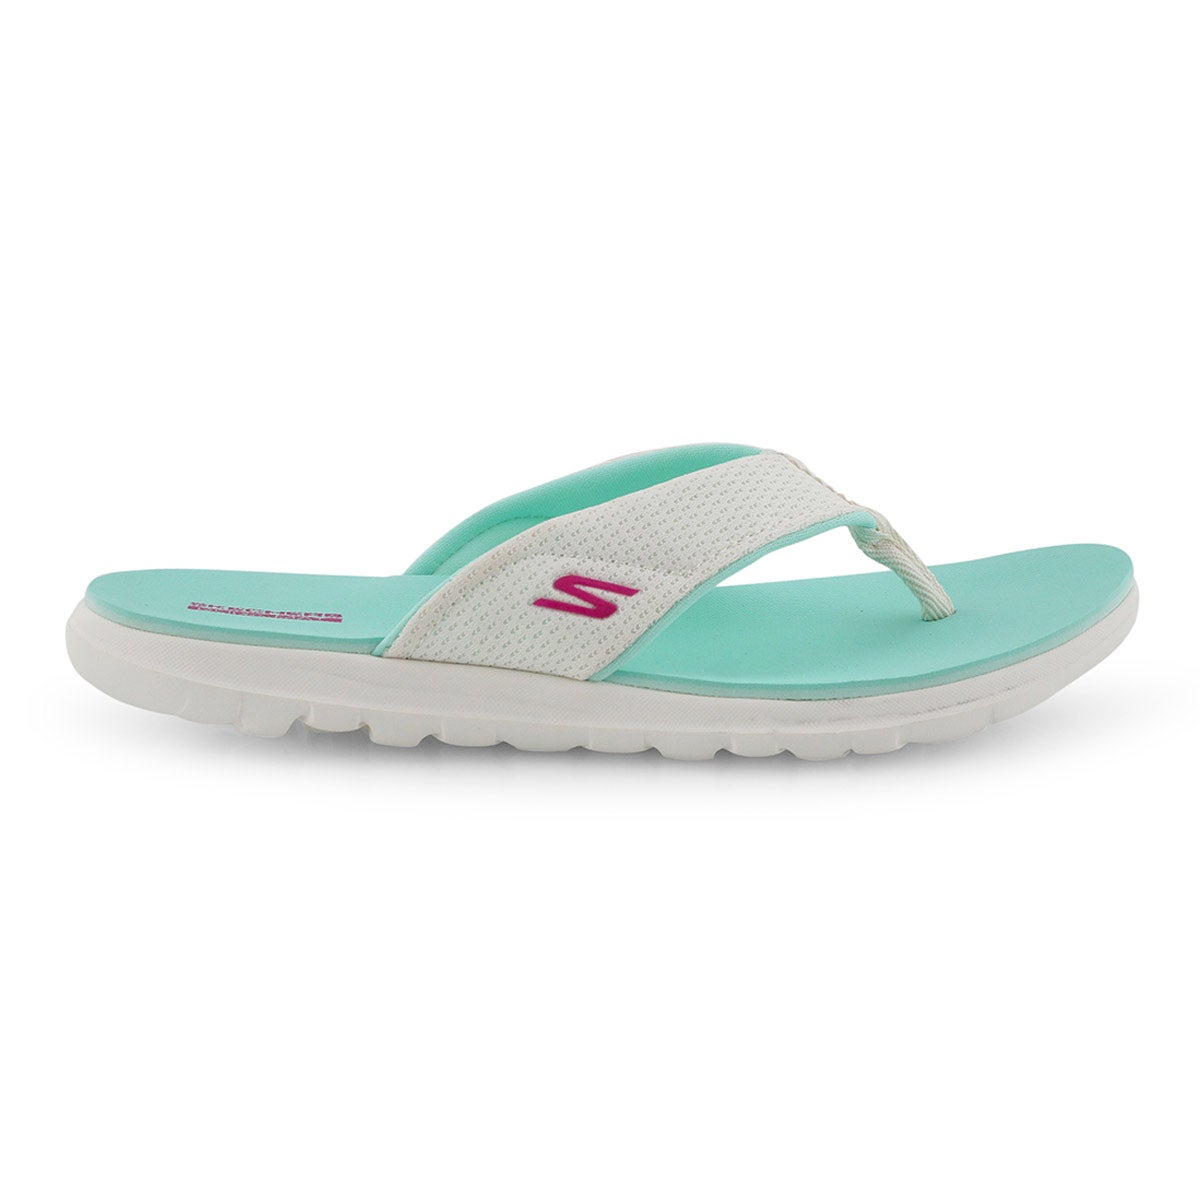 Lds Next Wave Ultra Capri flip flop sndl